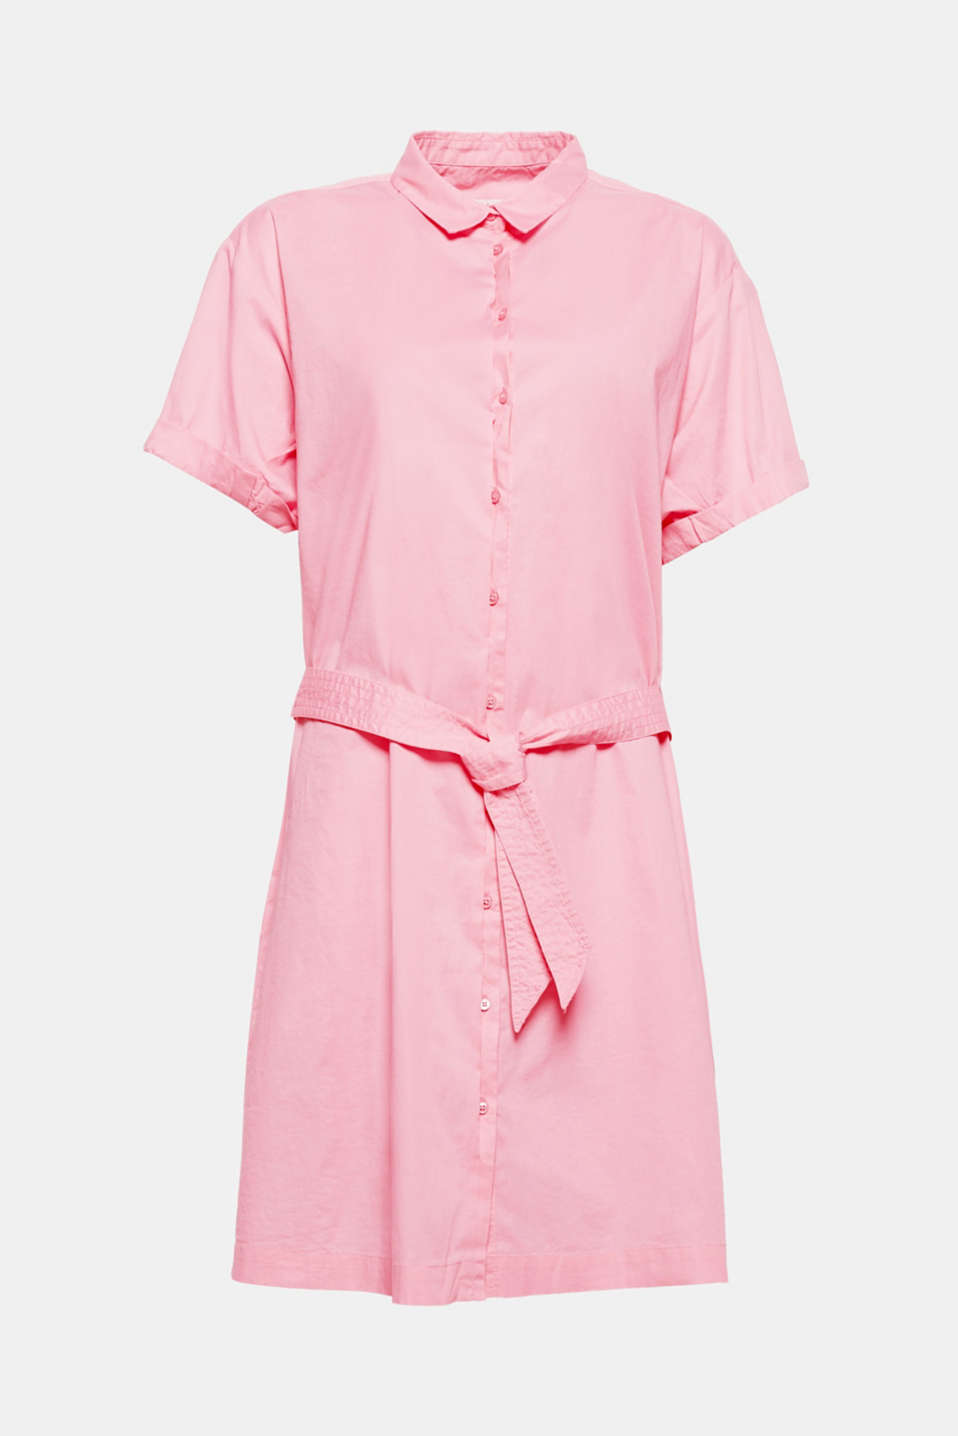 The new shirt dresses are simple and cool, just like this style crafted from stretch cotton with a semi-concealed button placket, tie-around belt and wide sleeves!